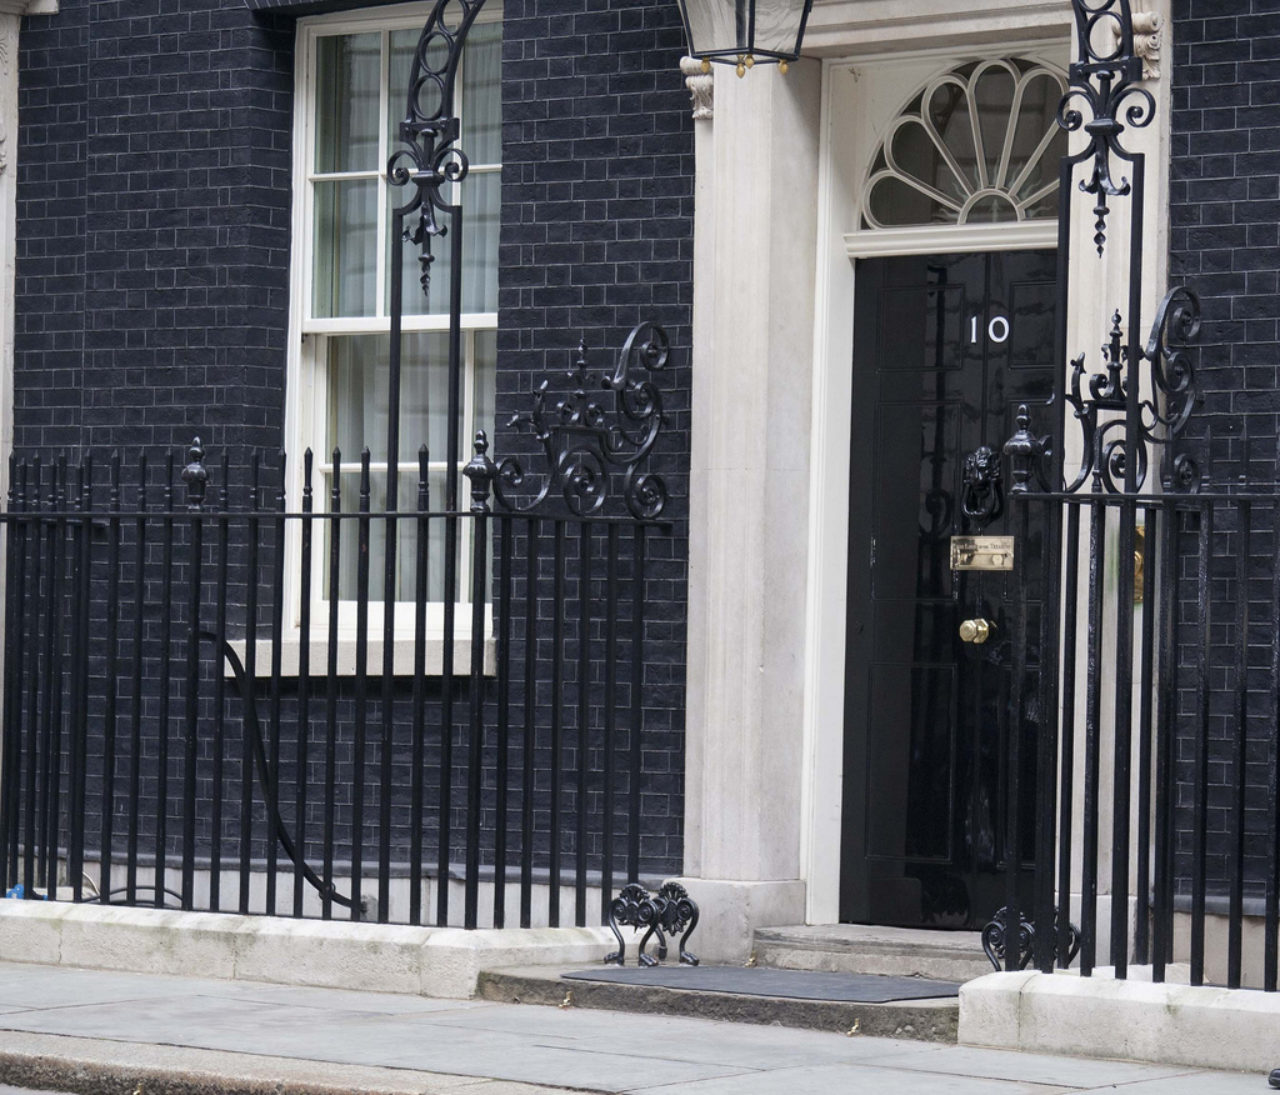 Image of 10 Downing Street, London